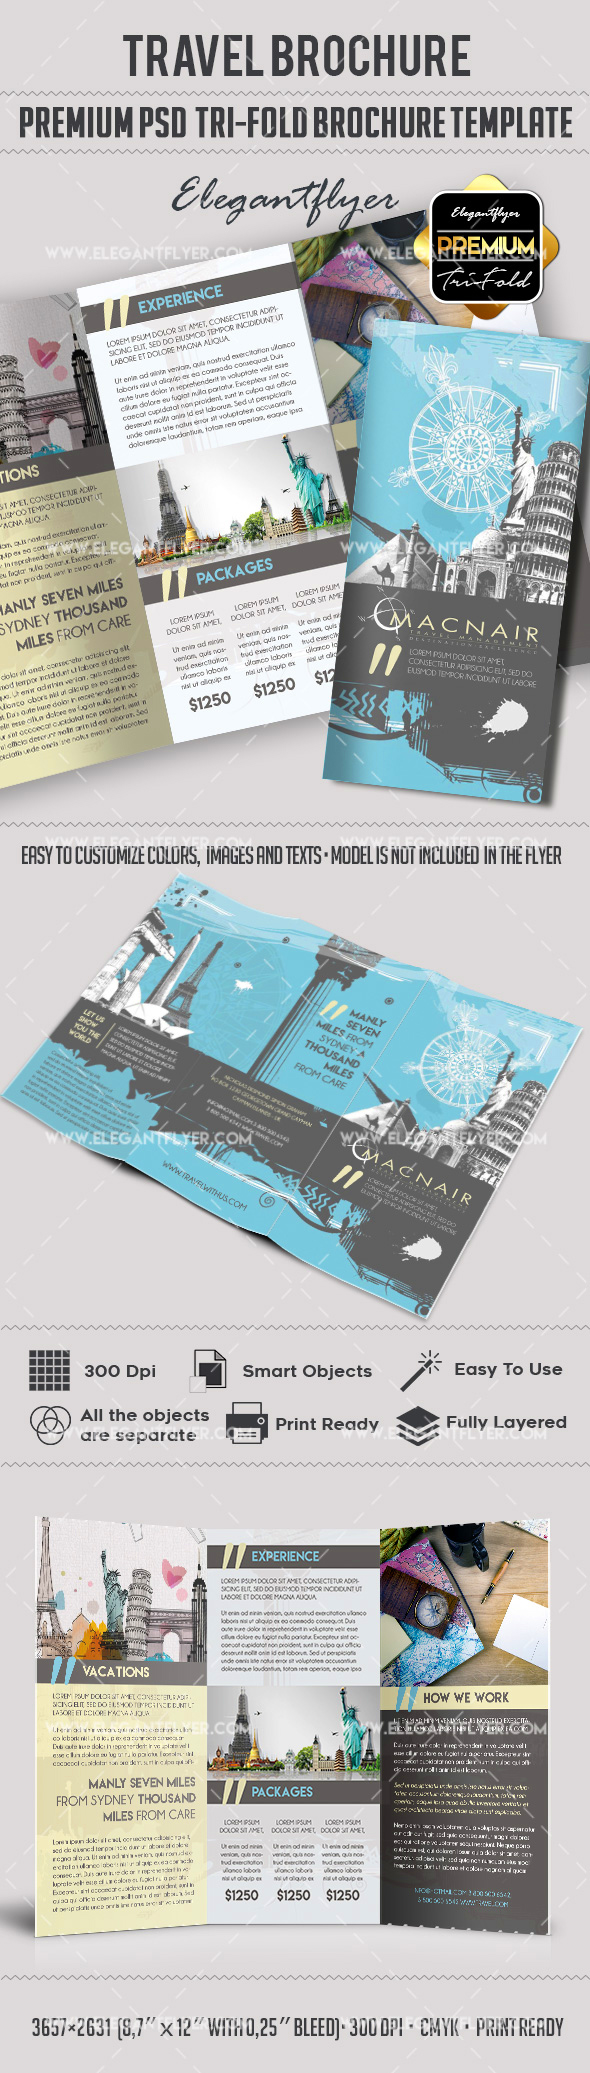 Travel – Premium Tri-Fold PSD Brochure Template